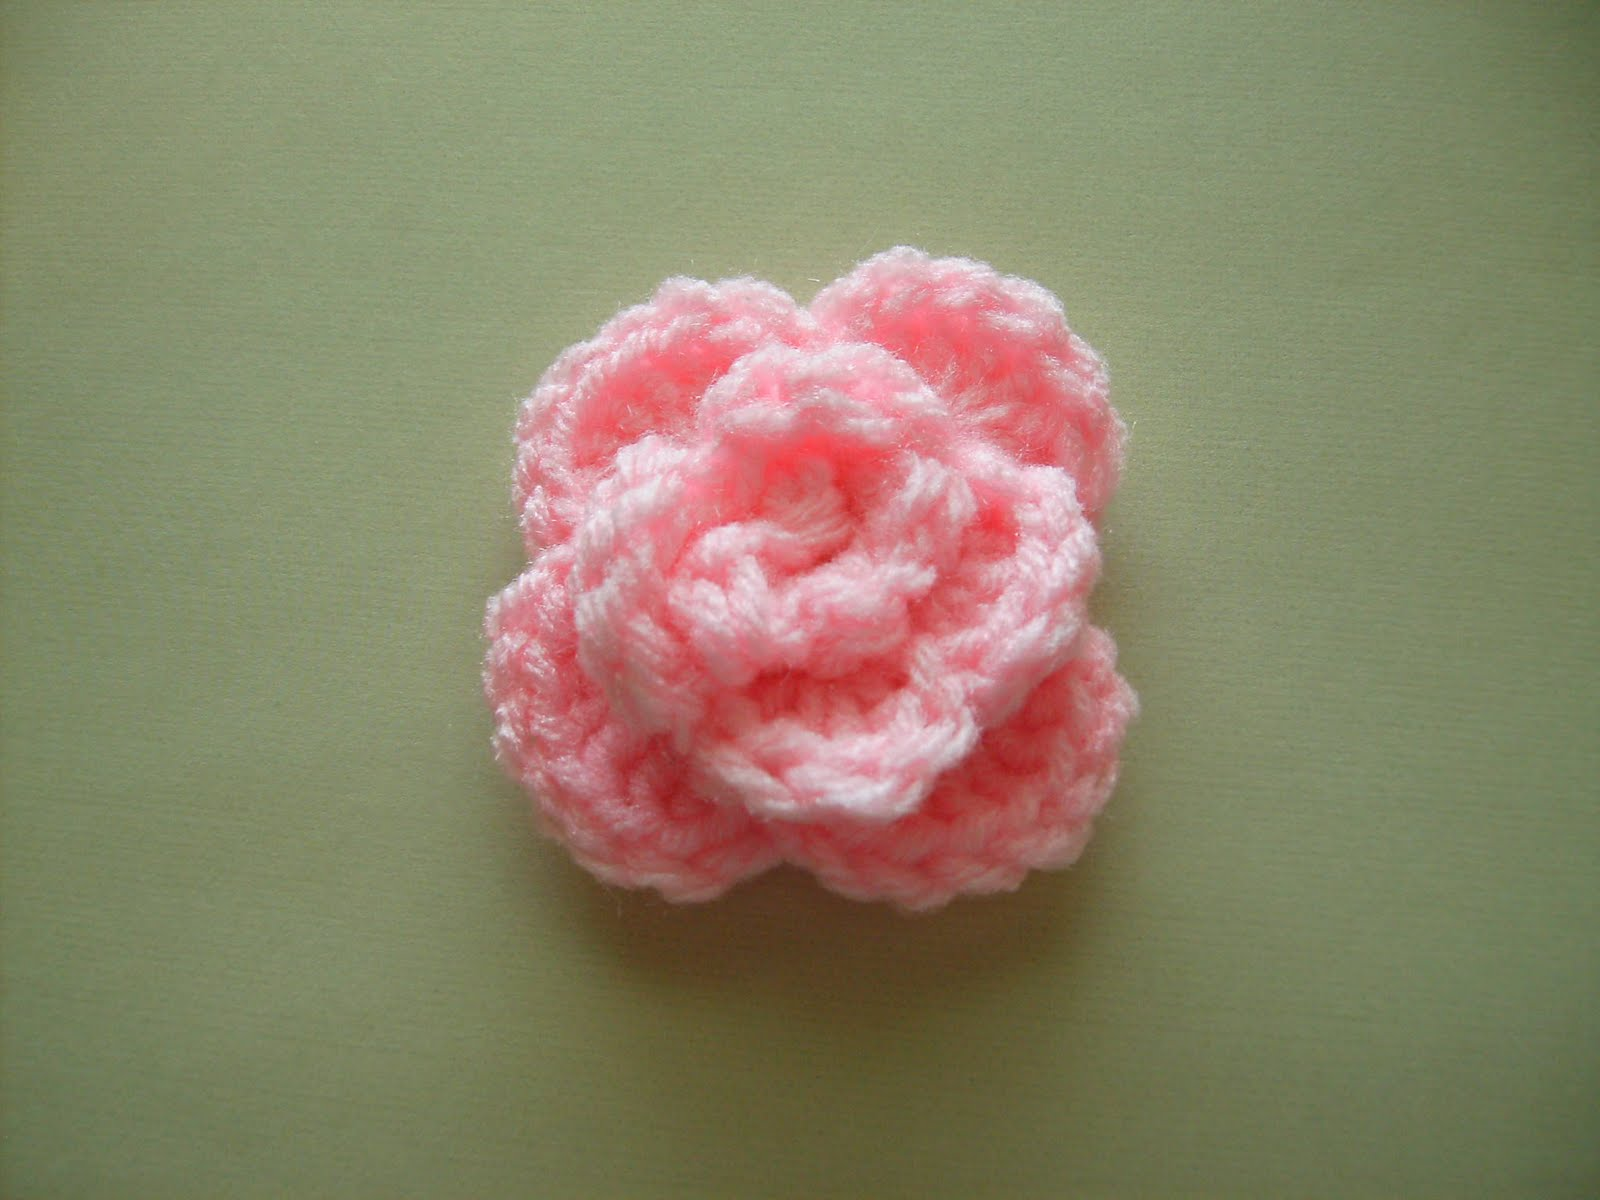 Crochet Thread Rose Pattern Free : Scrap Yarn Crochet: Free Rose Crochet Pattern